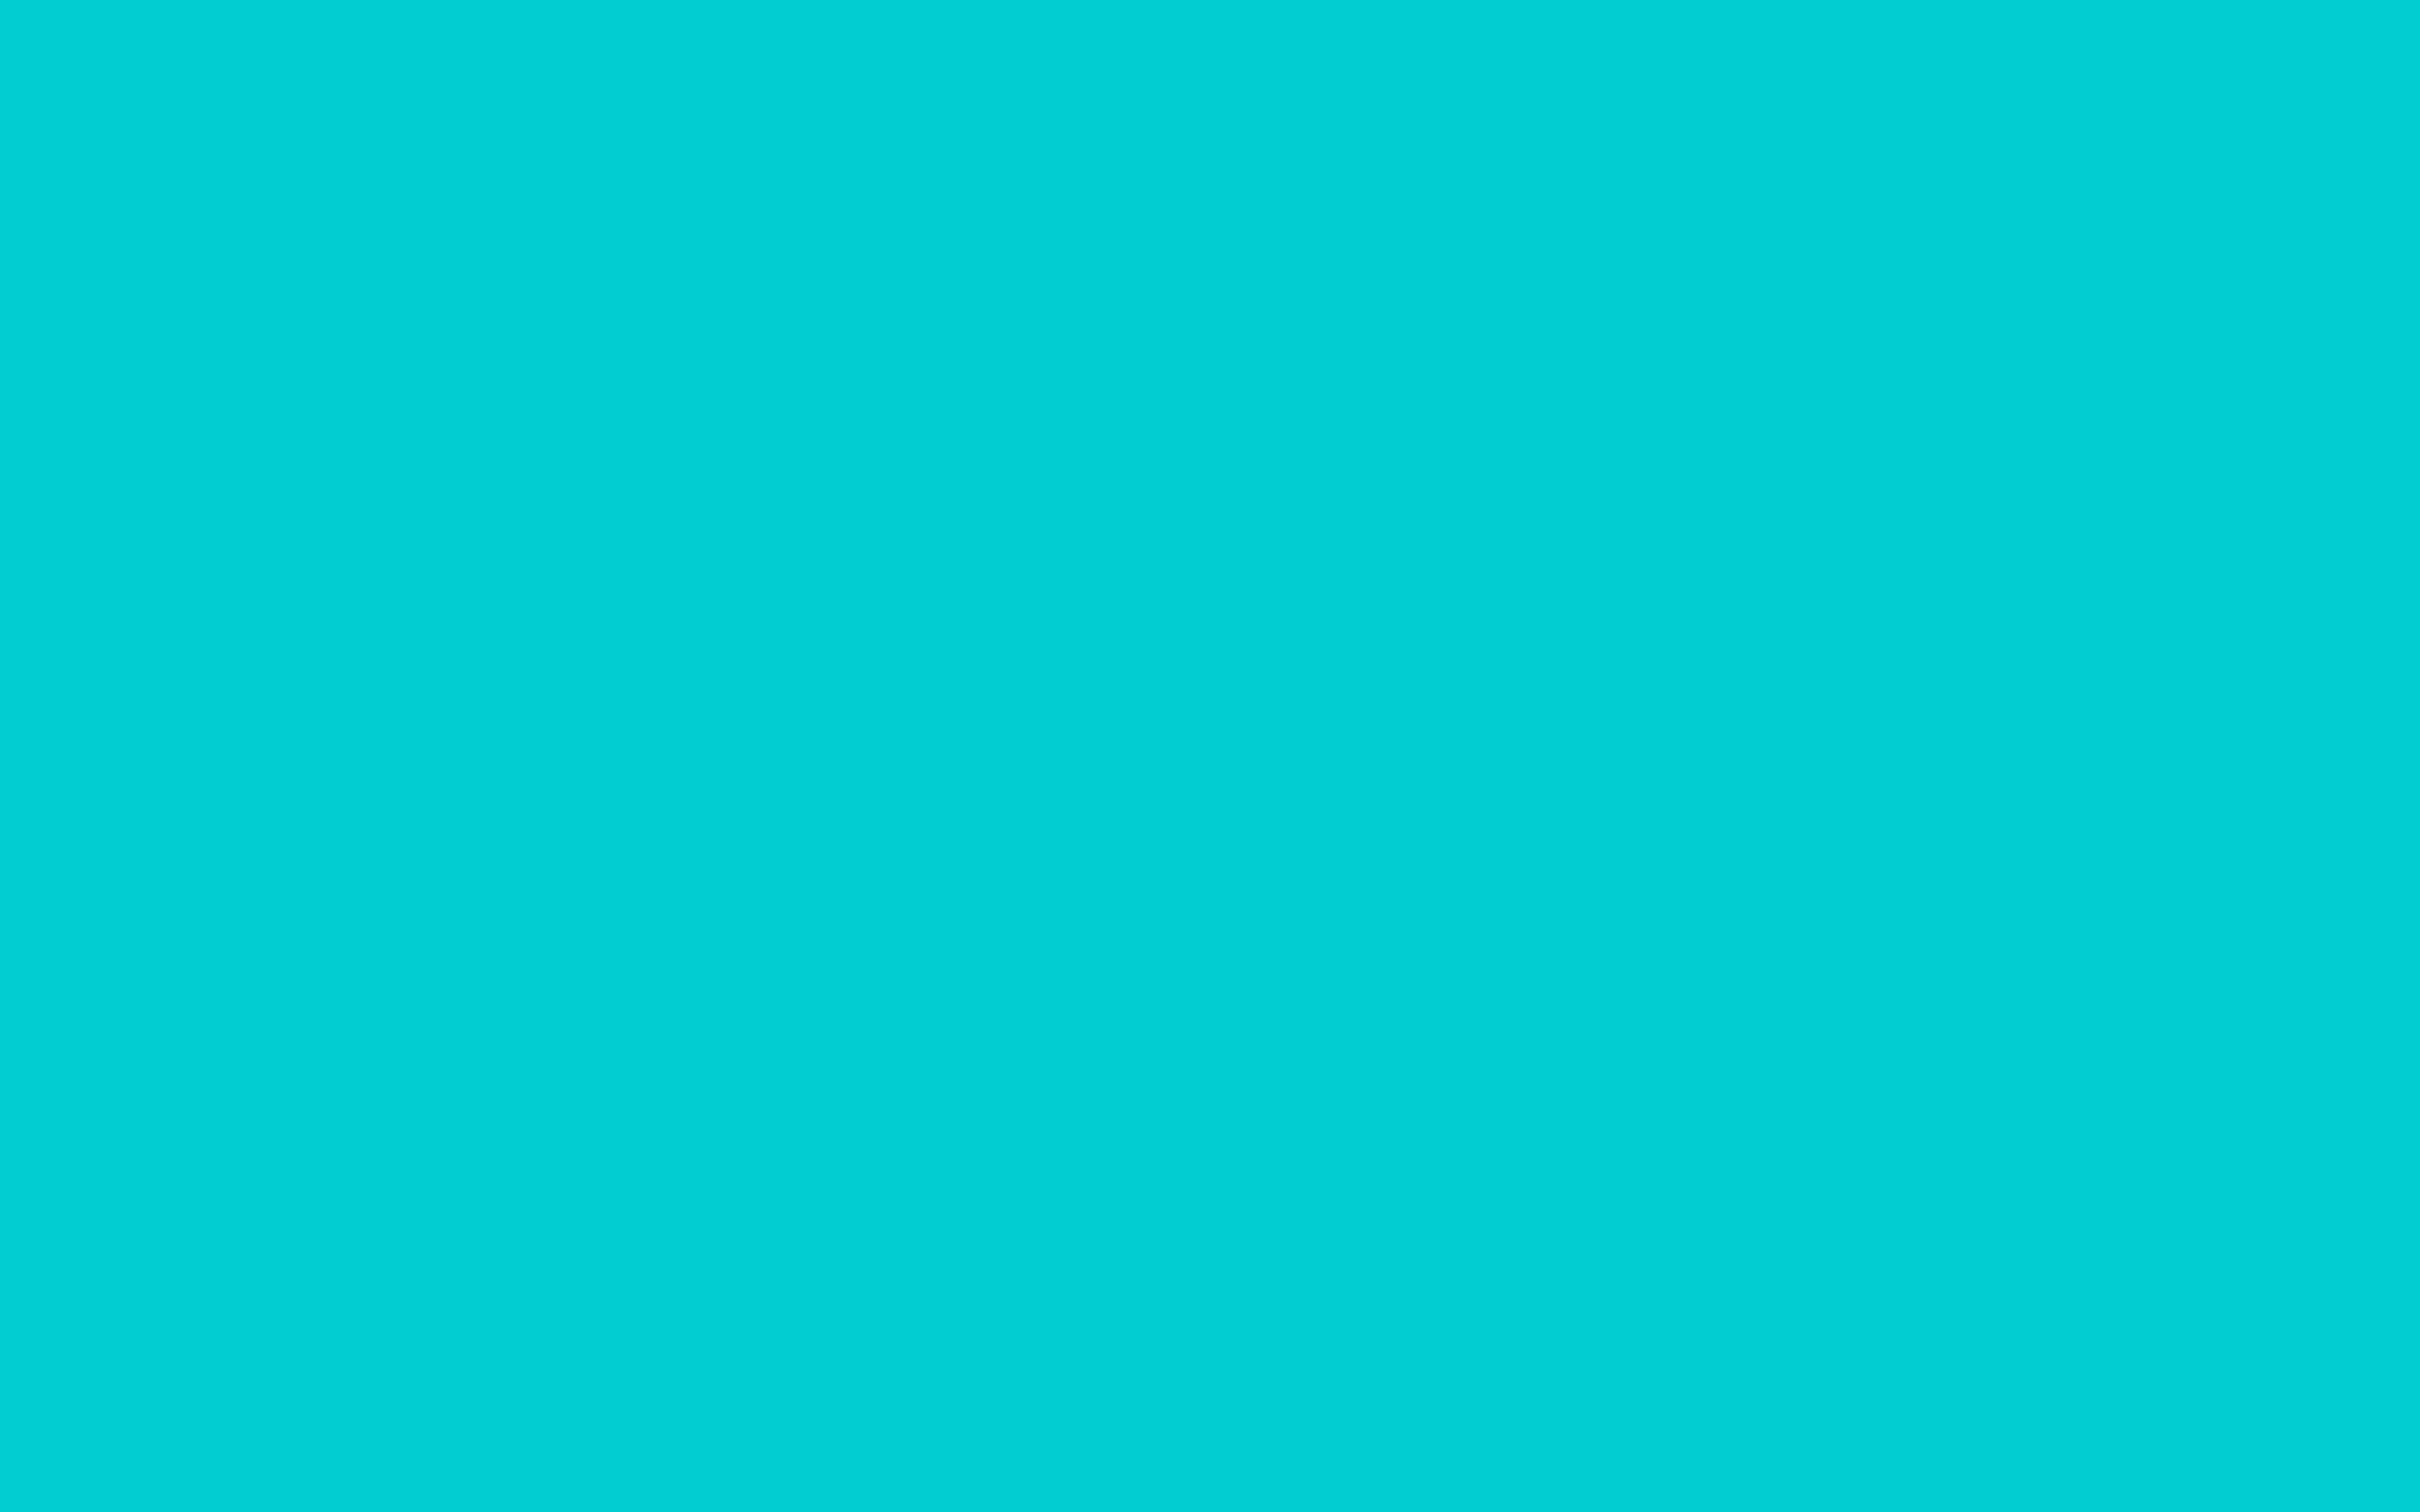 2560x1600 Dark Turquoise Solid Color Background